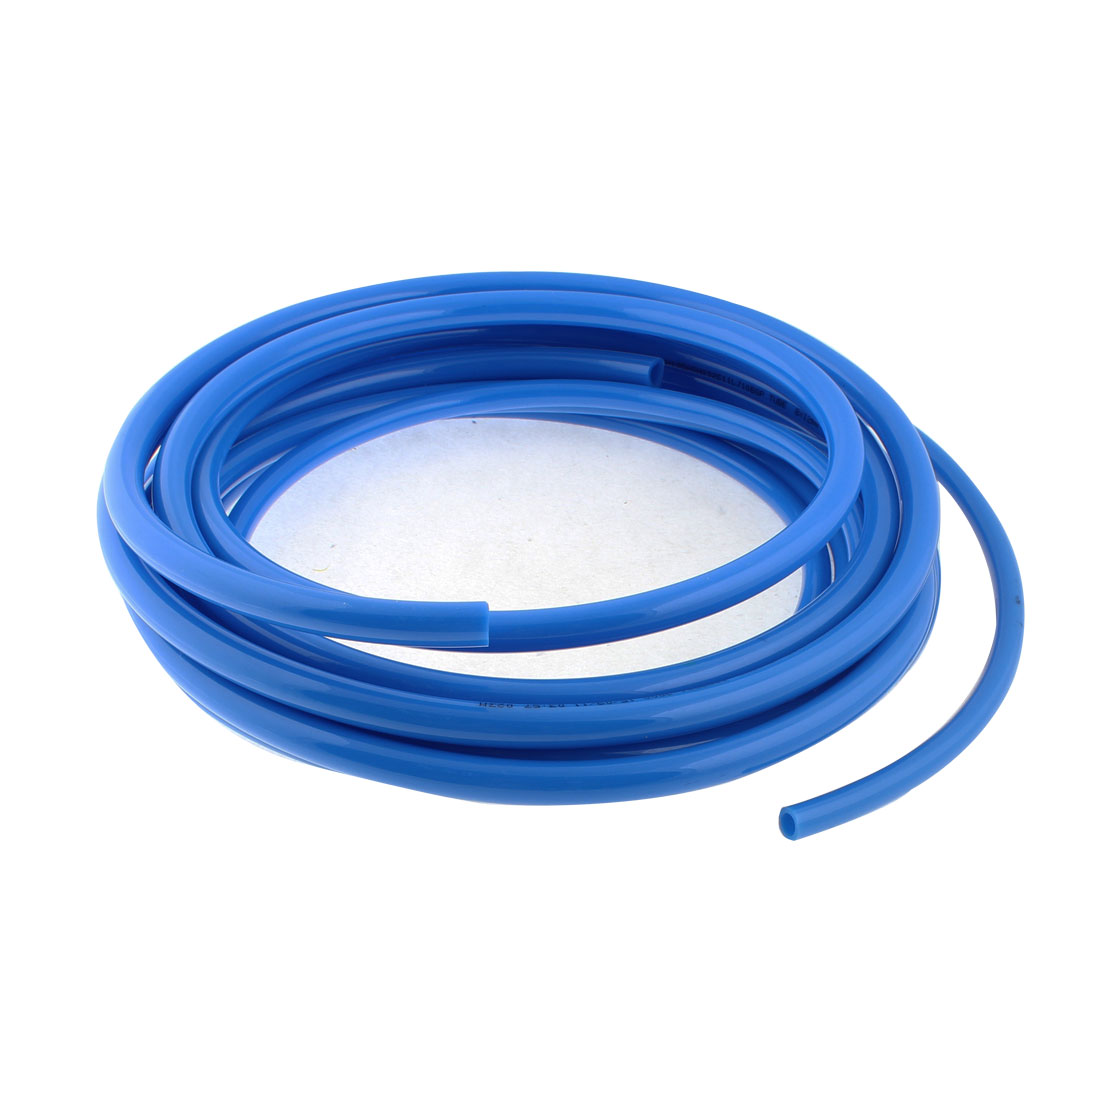 2pcs 4.1M Length 10mmx6.5mm 12mmx8mm Blue Air Compressor Pneumatic Hose Polyurethane PU Pipe Tube Tubing